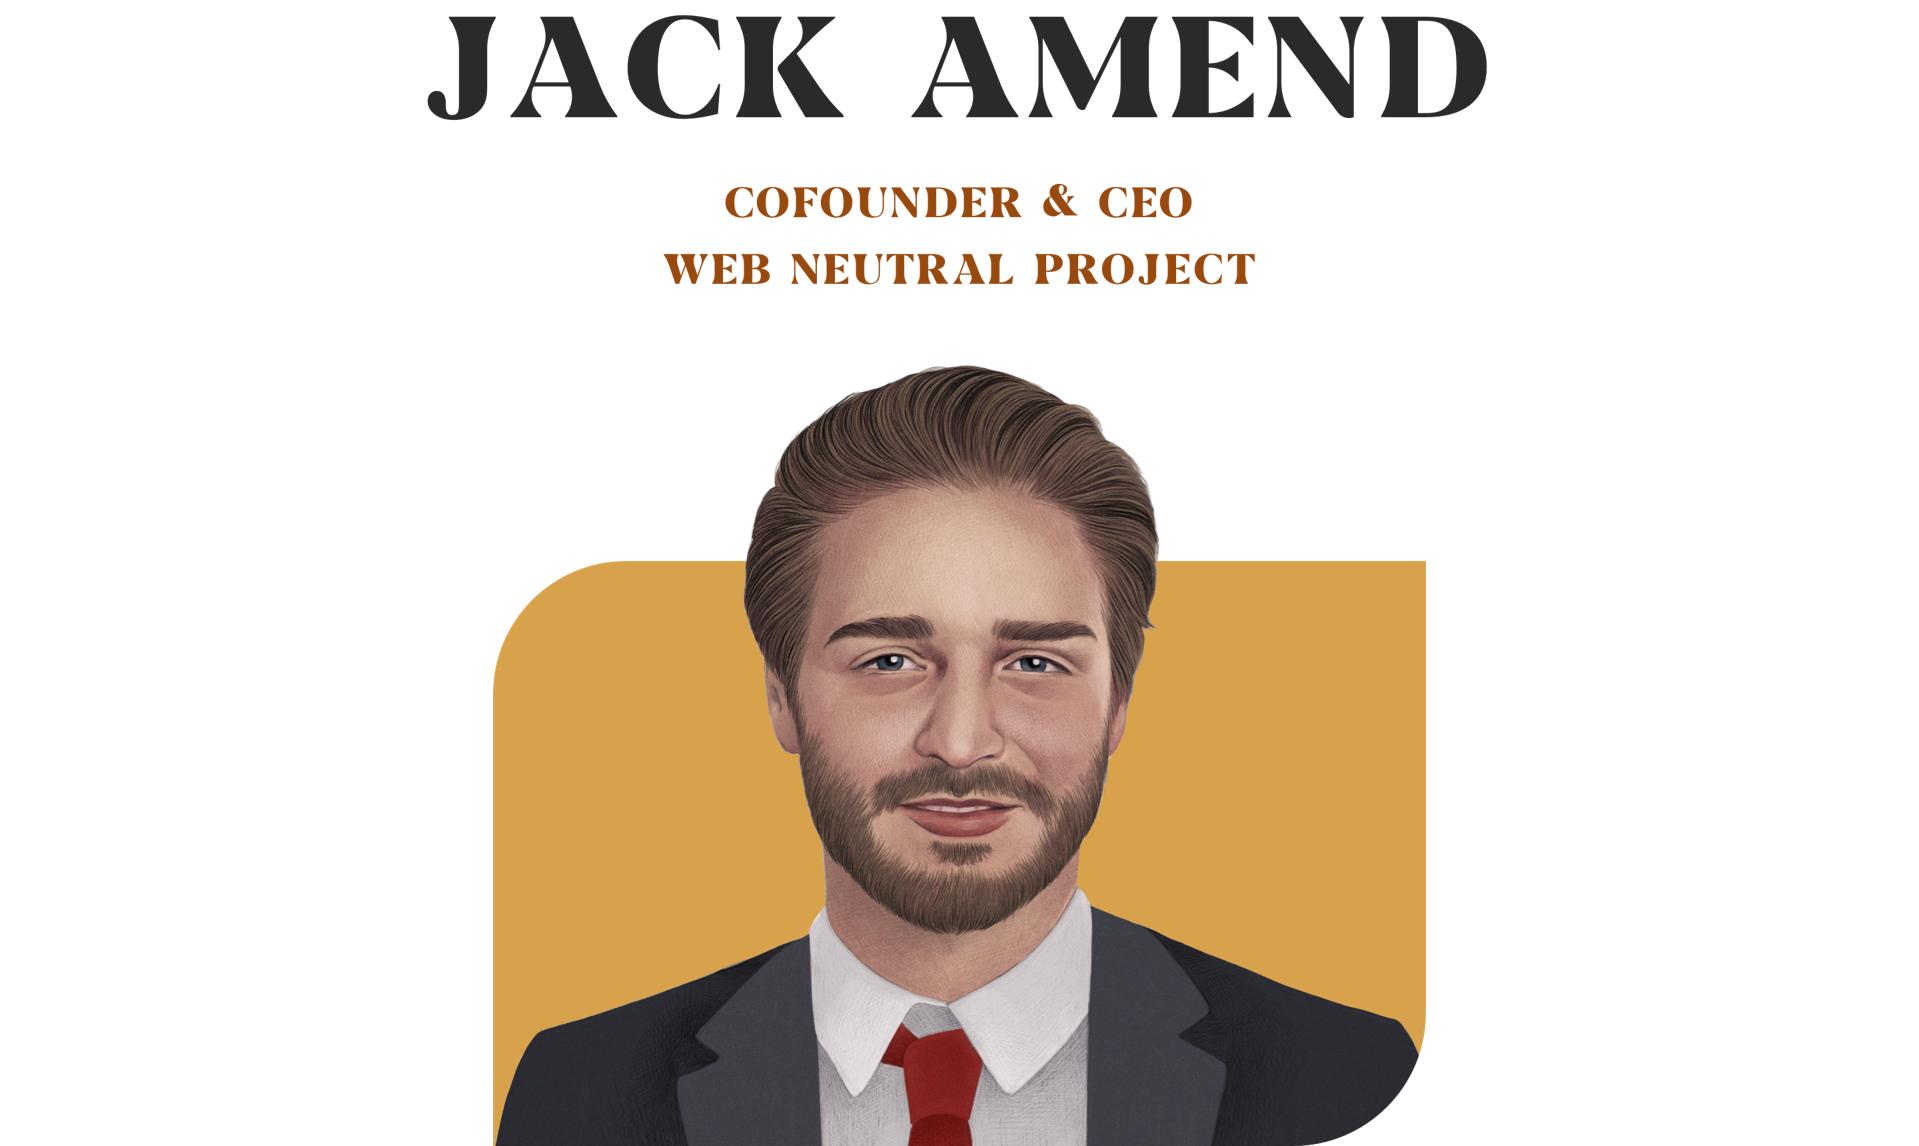 Jack amend cofounder & ceo web neutral project